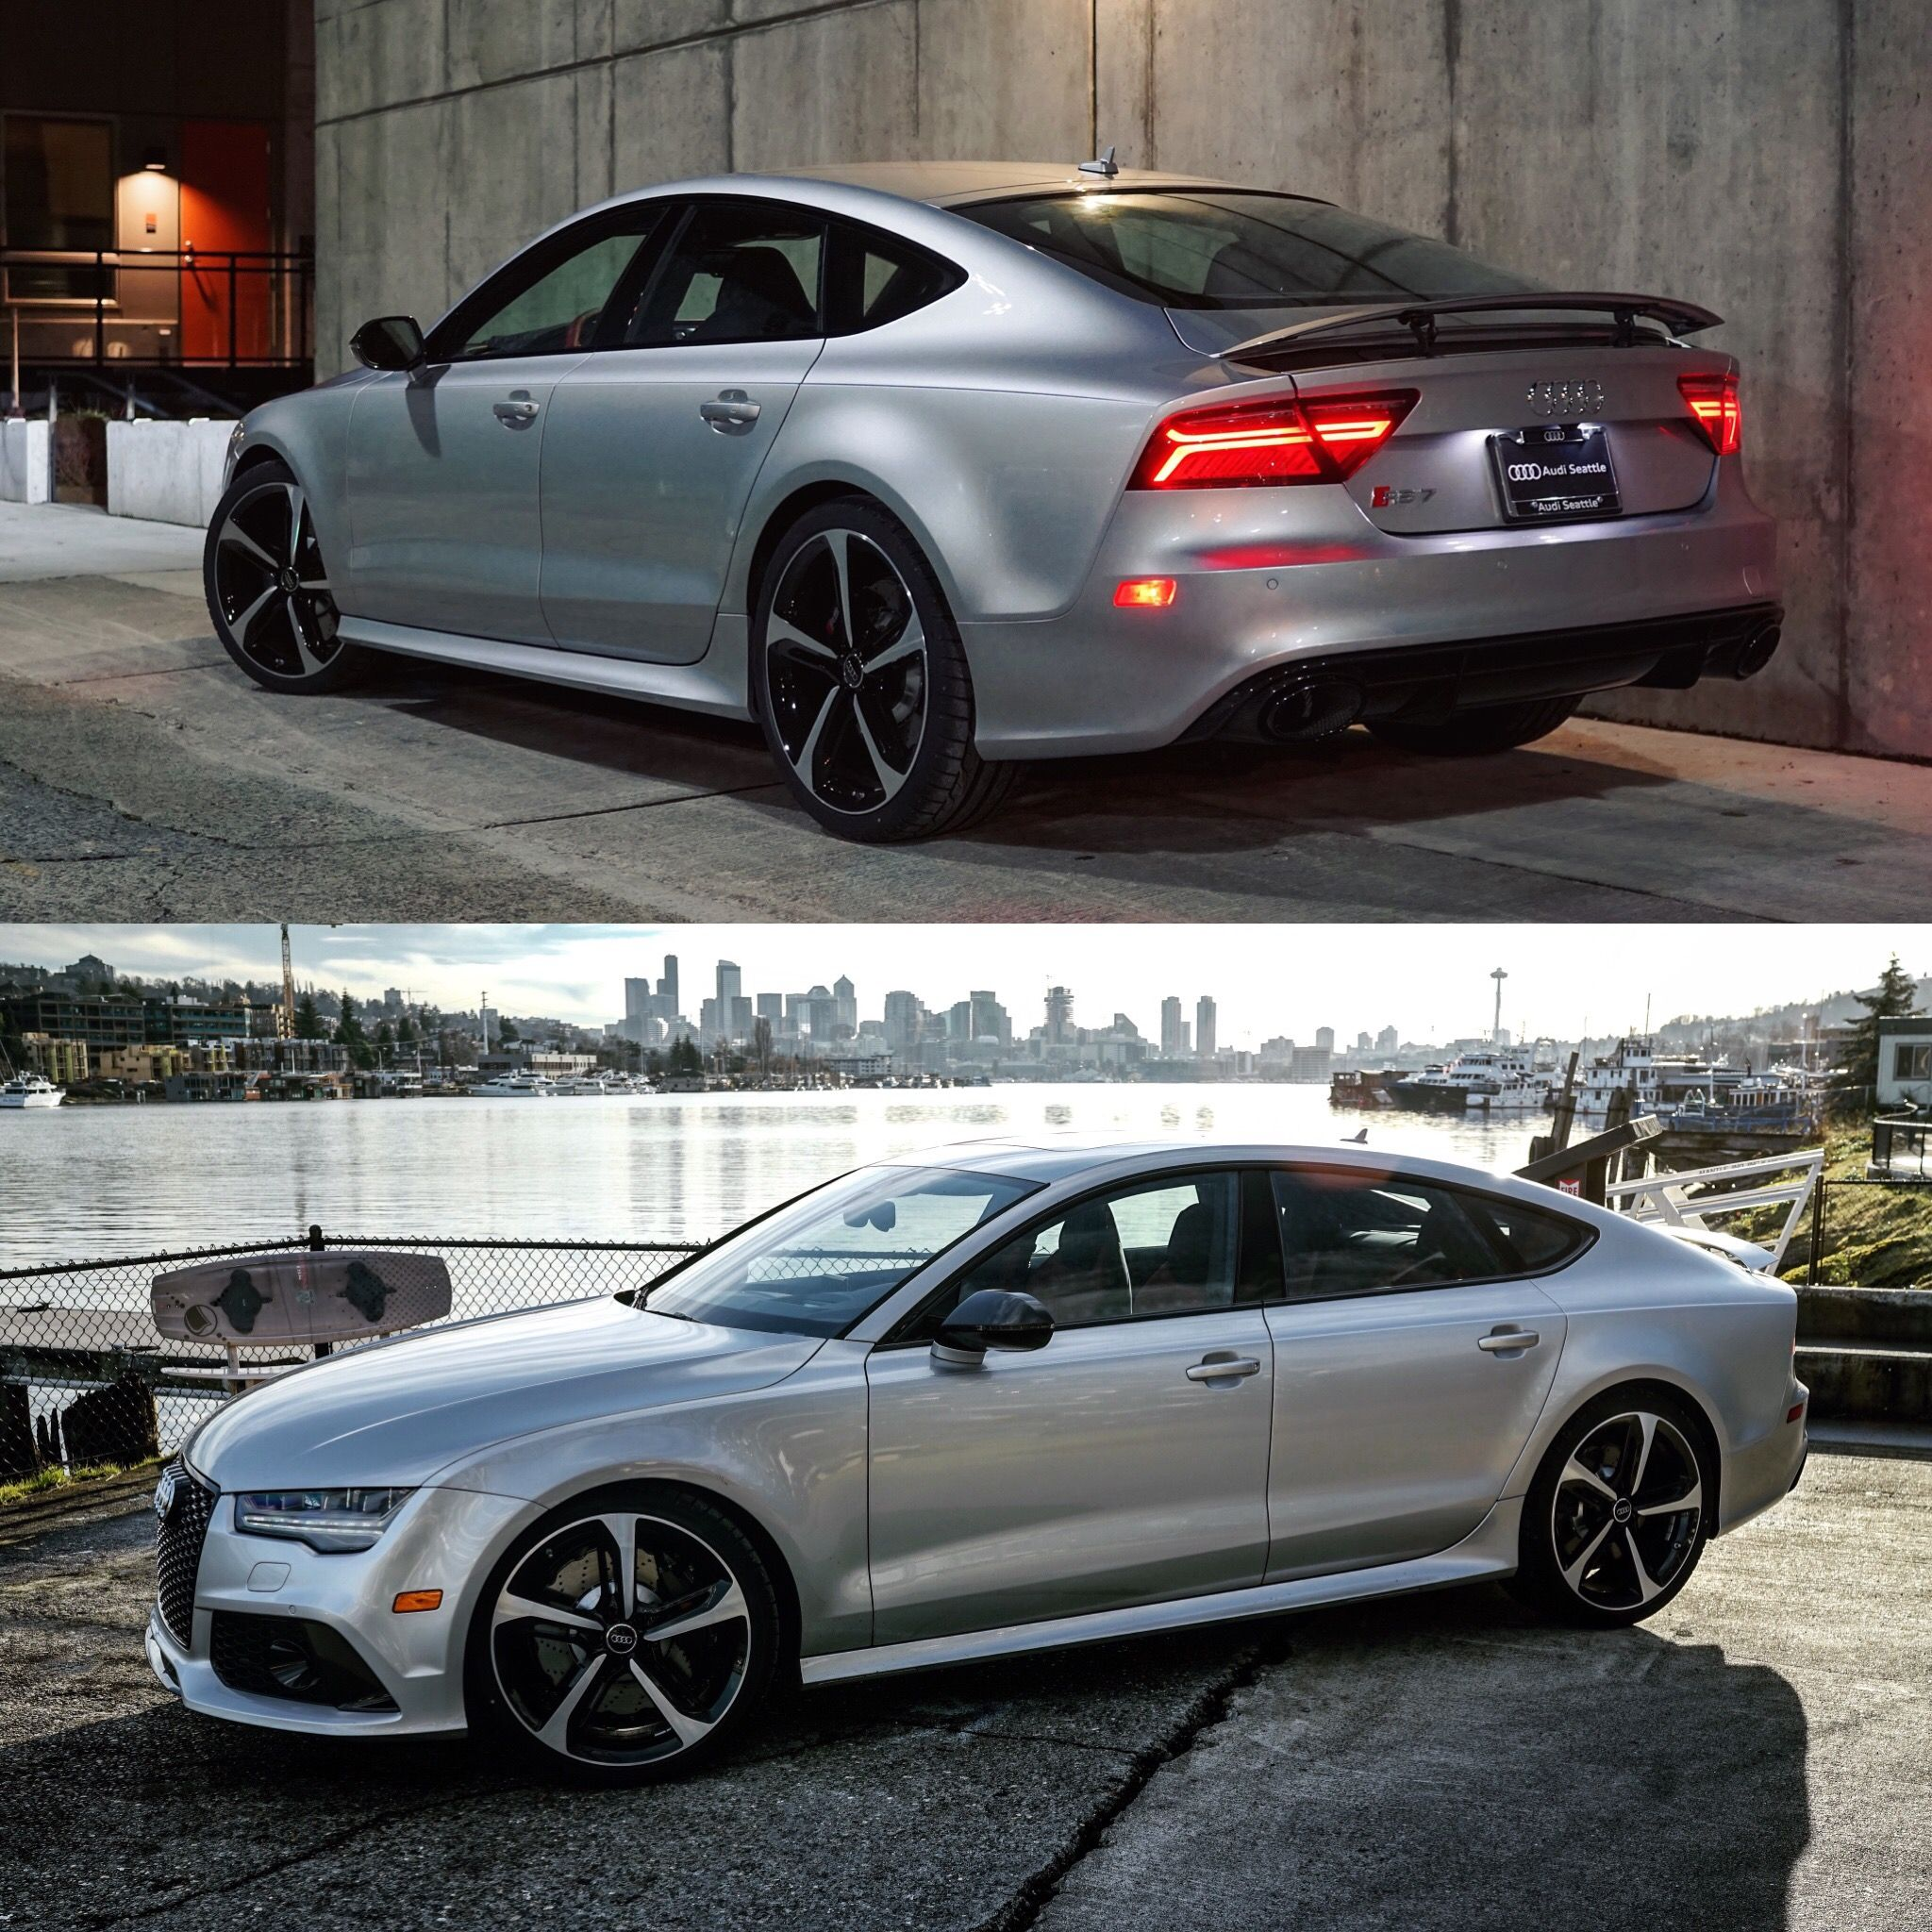 These Two Shots Of This Prism Silver #RS7 Look Great